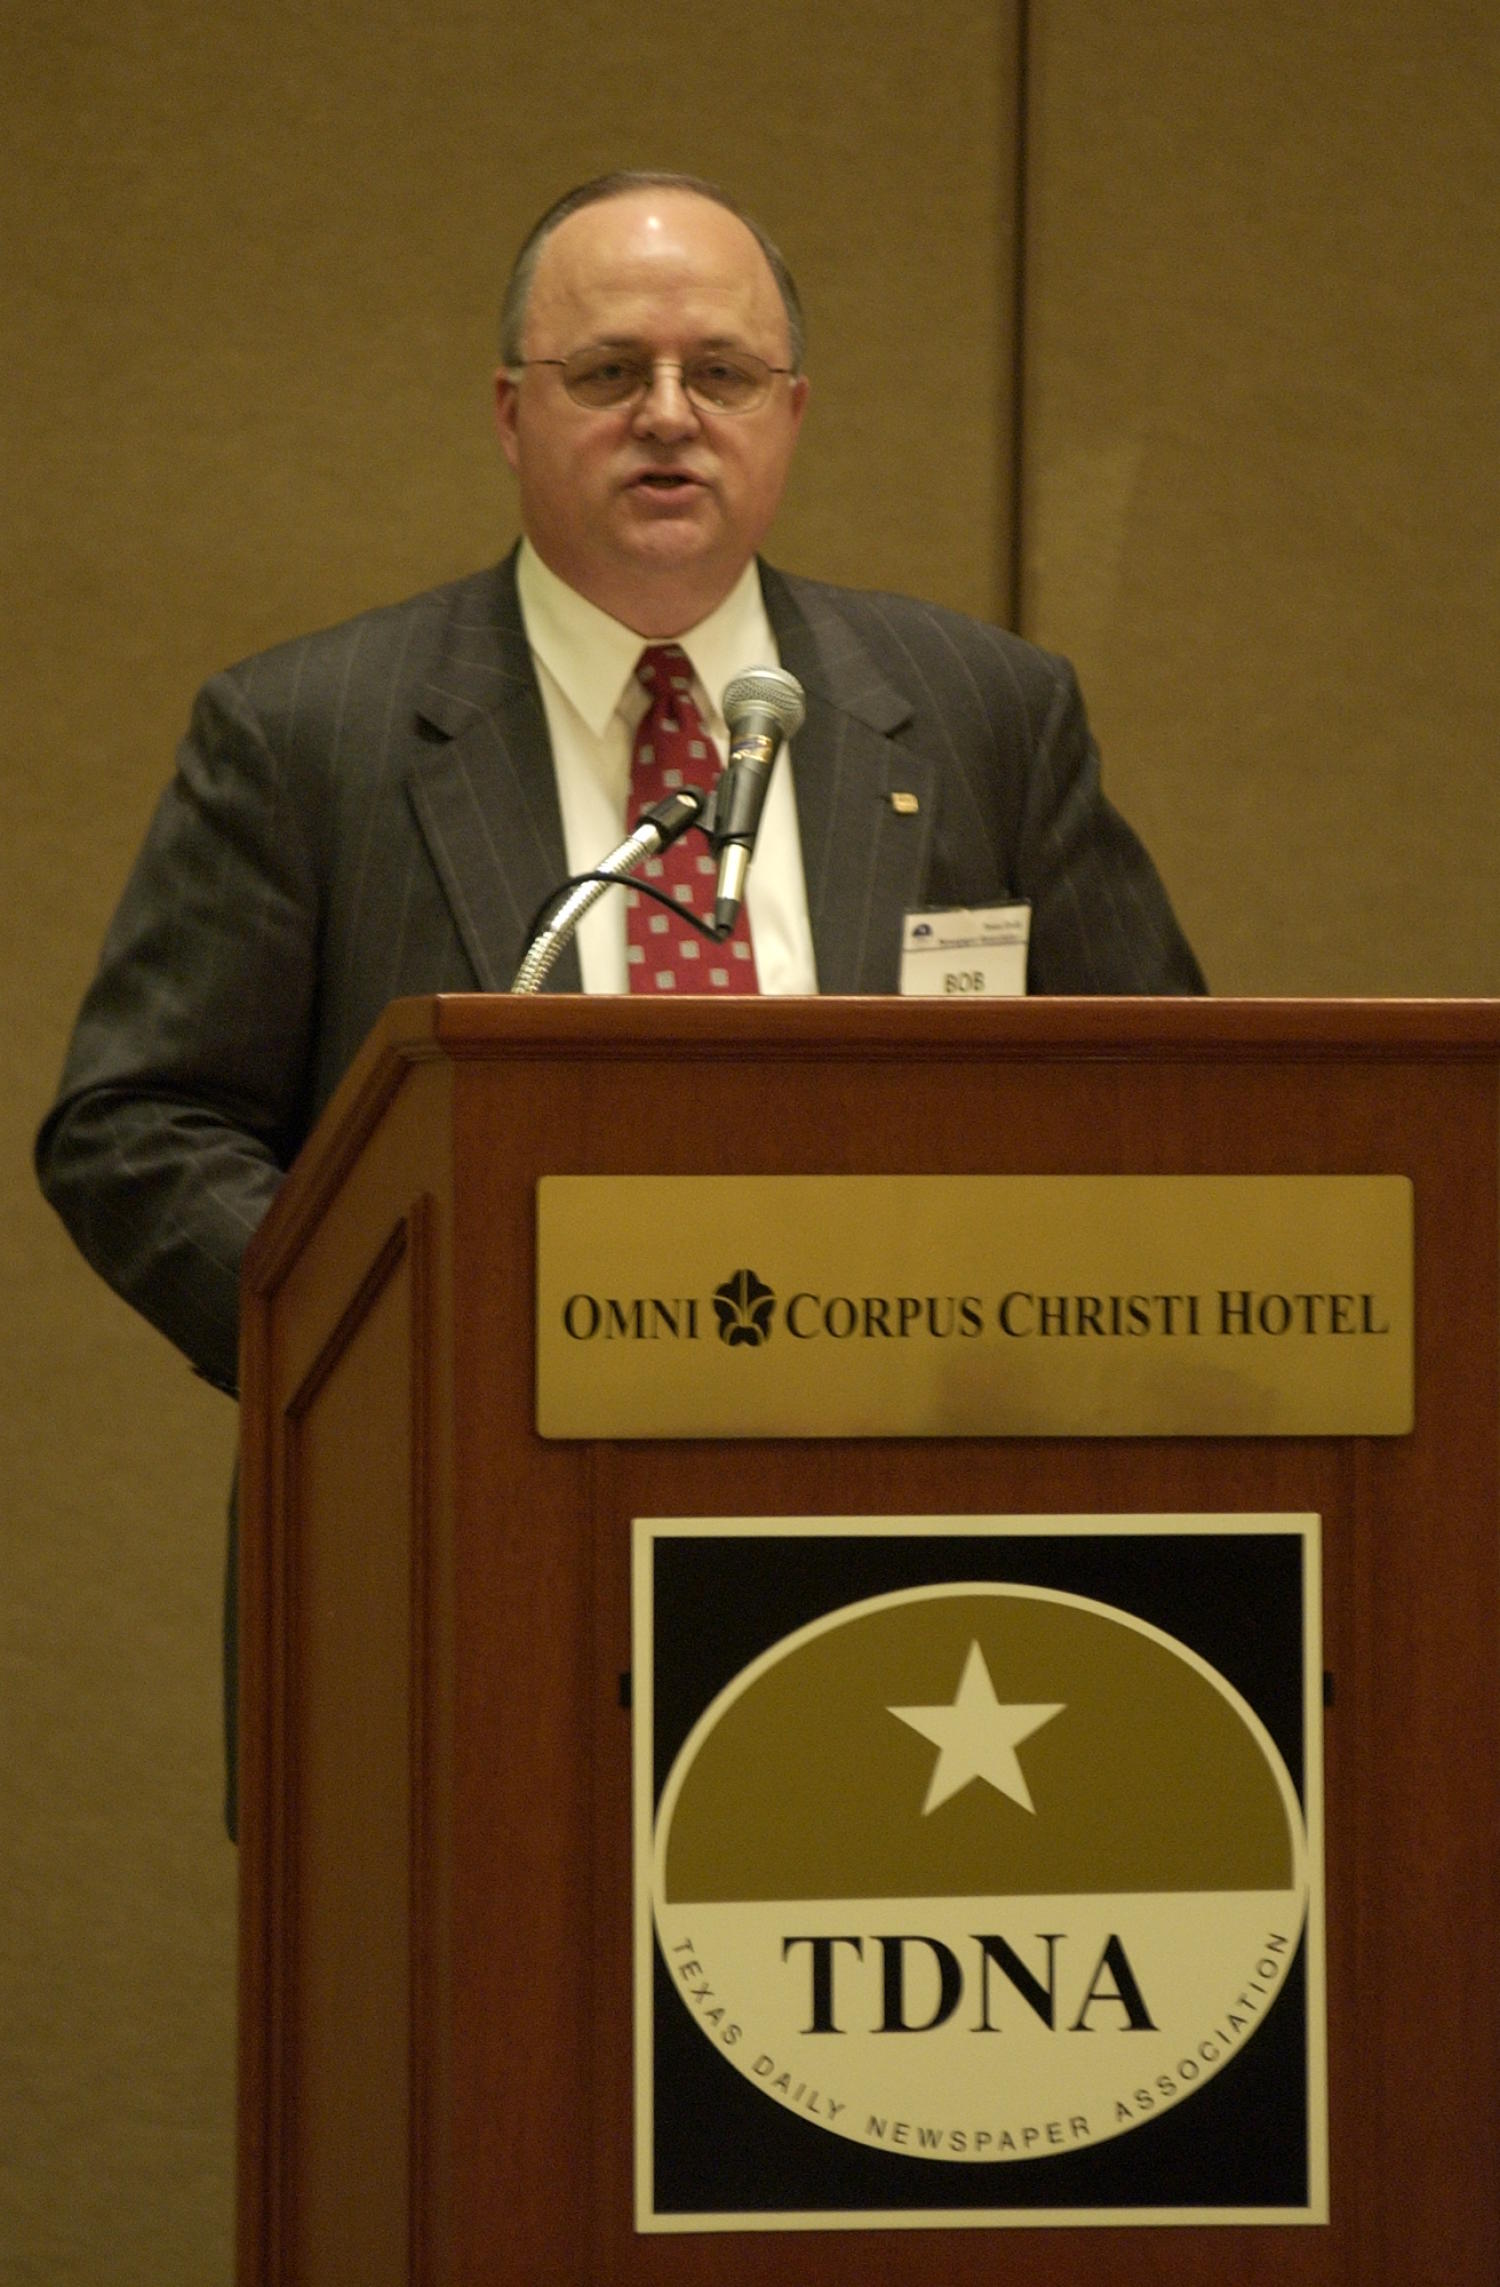 """[Bob Carlquist speaking at the TDNA conference in Corpus Christi], Photograph of Bob Carlquist speaking to the conference attendees during the 2004 Texas Daily News Association annual conference held in Corpus Christi. Carlquist is seen standing behind the podium that reads, """"Omni Corpus Christi Hotel"""" and displays the TDNA emblem.,"""